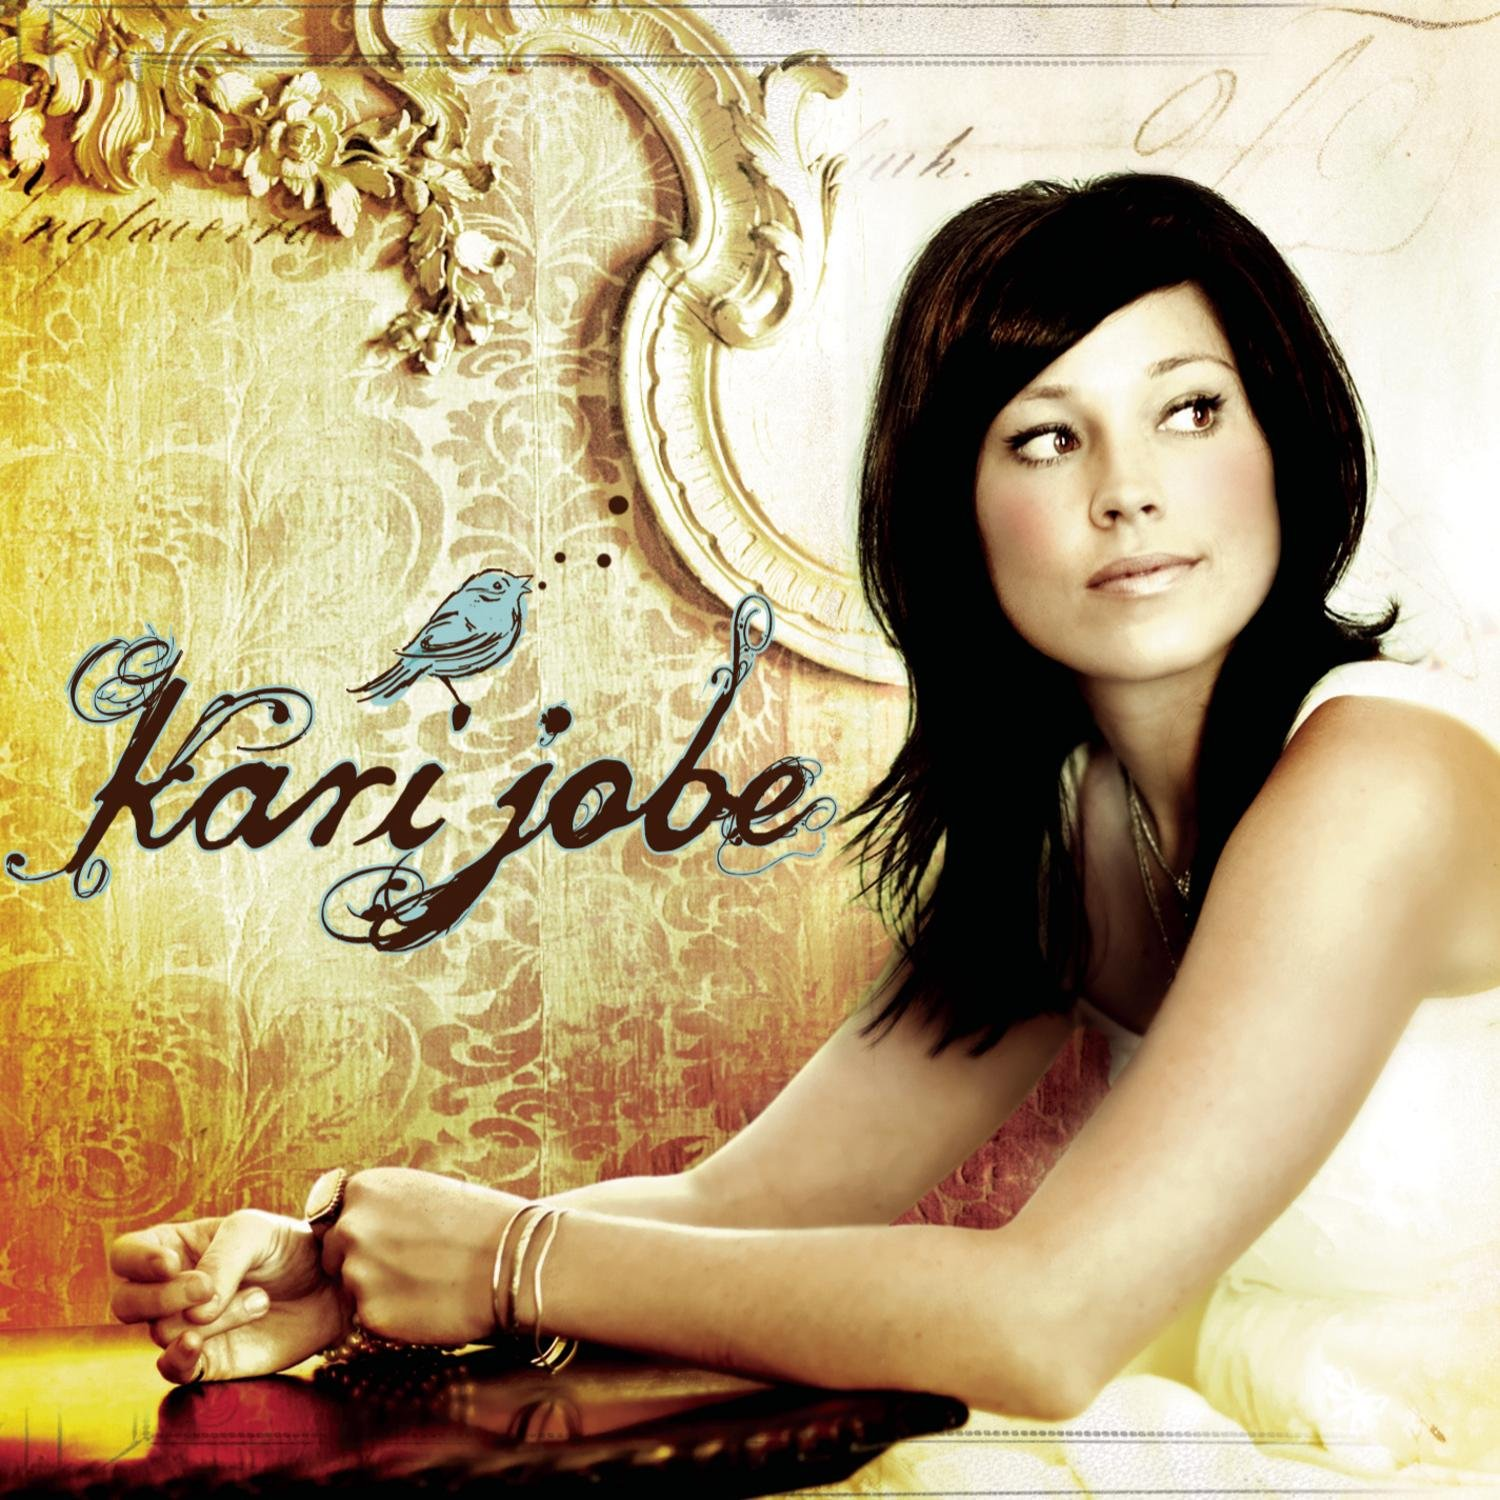 Kari Jobe - Kari Jobe - Amazon.com Music